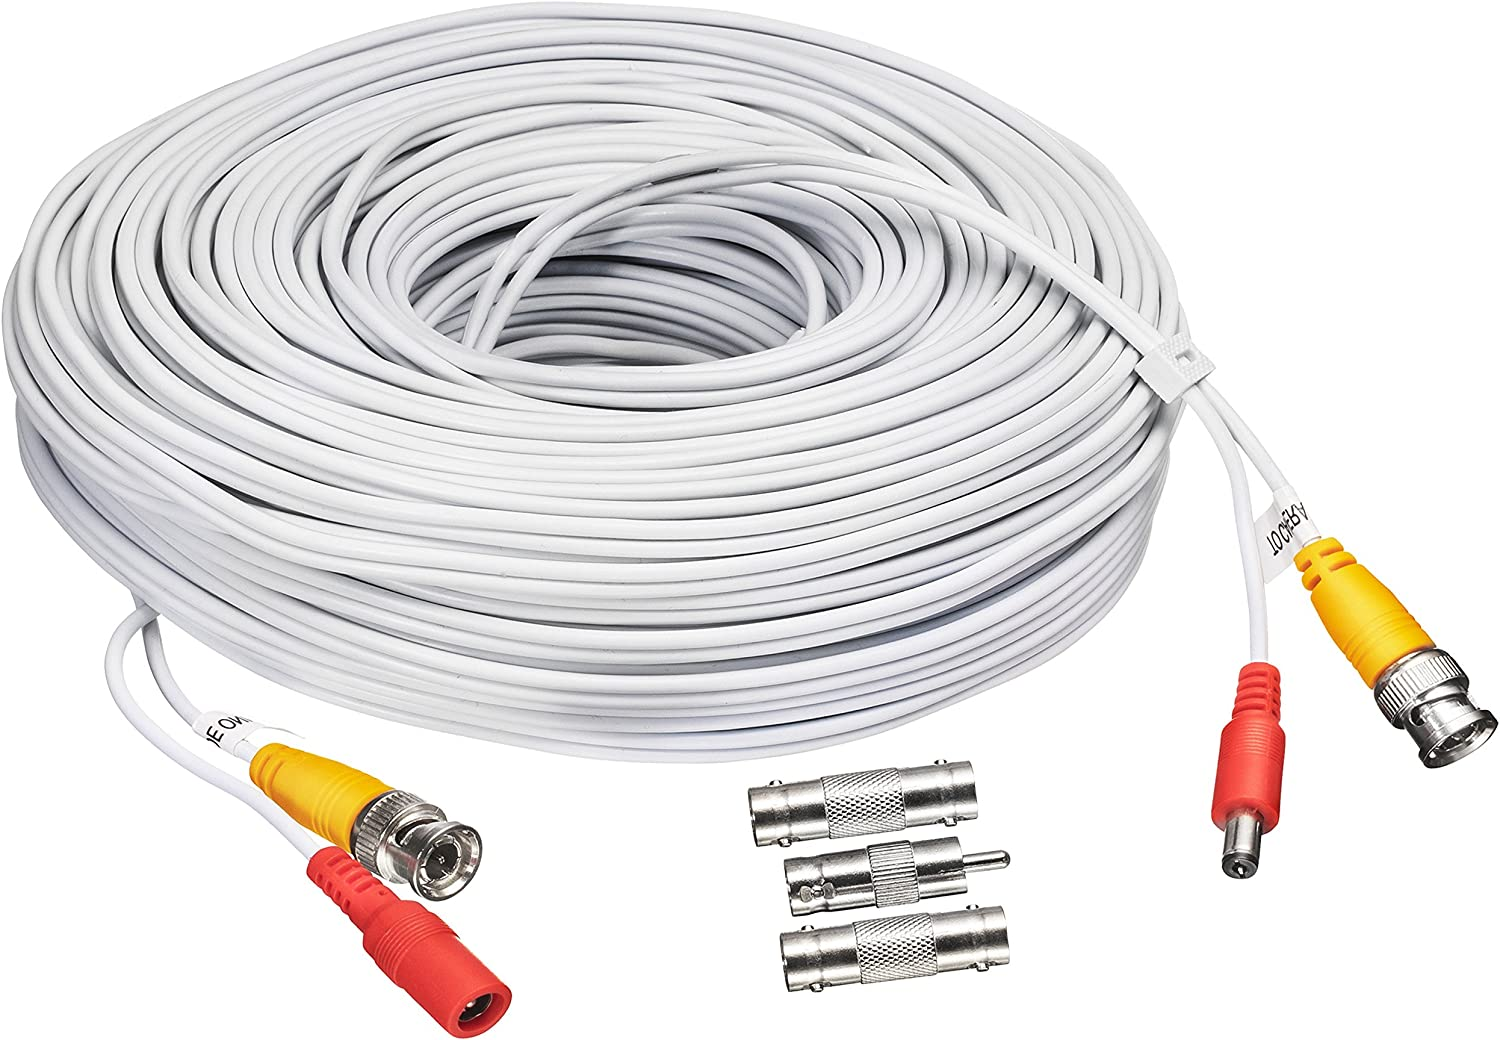 BNC CCTV DVR Cable Video Surveillance Security System Camera Coaxial Wire Cord Connector (60ft) Premade All-in-One with Power Cord - 60 Feet